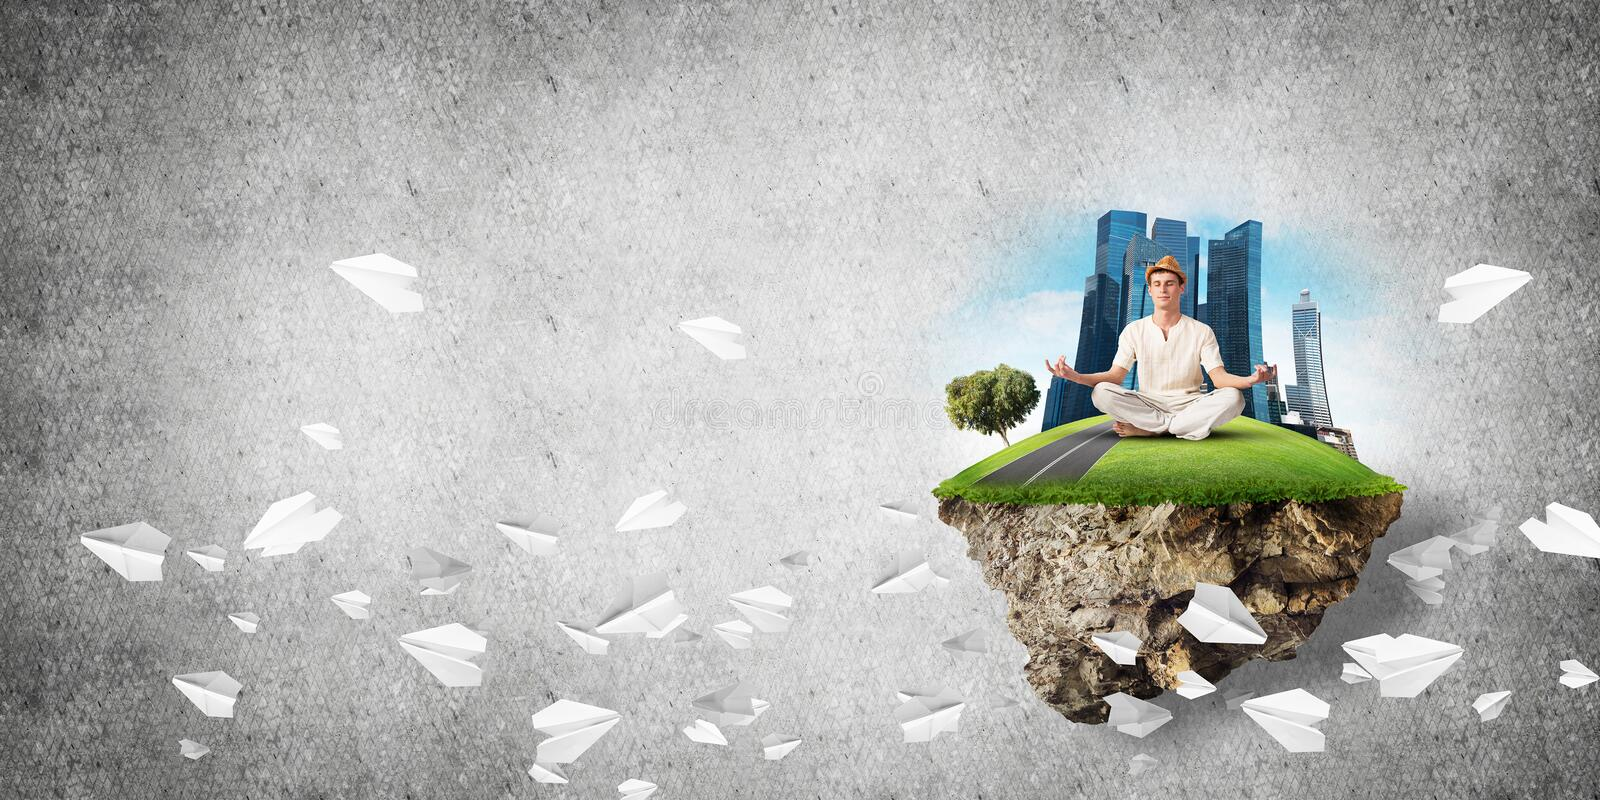 Young man keeping mind conscious. Man in white clothing keeping eyes closed and looking concentrated while meditating on island in the air among flying paper royalty free illustration